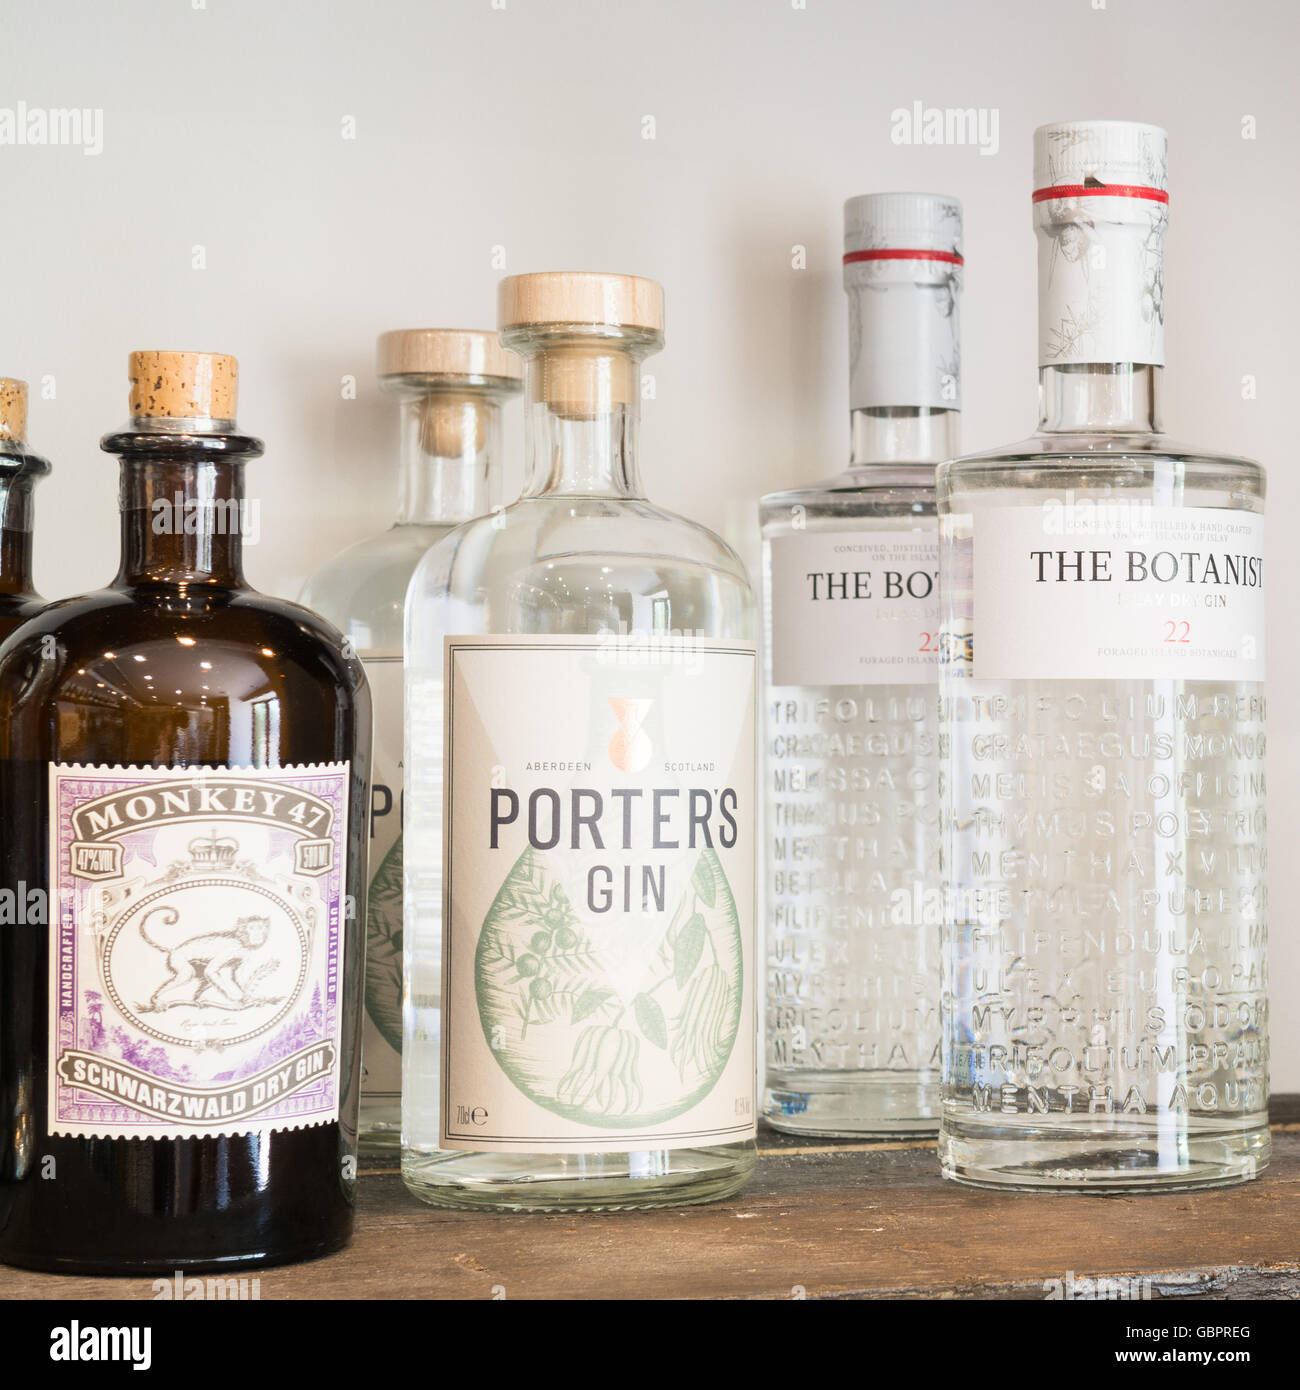 Craft gin for sale - Monkey 47, Porters Gin and The Botanist - Stock Image